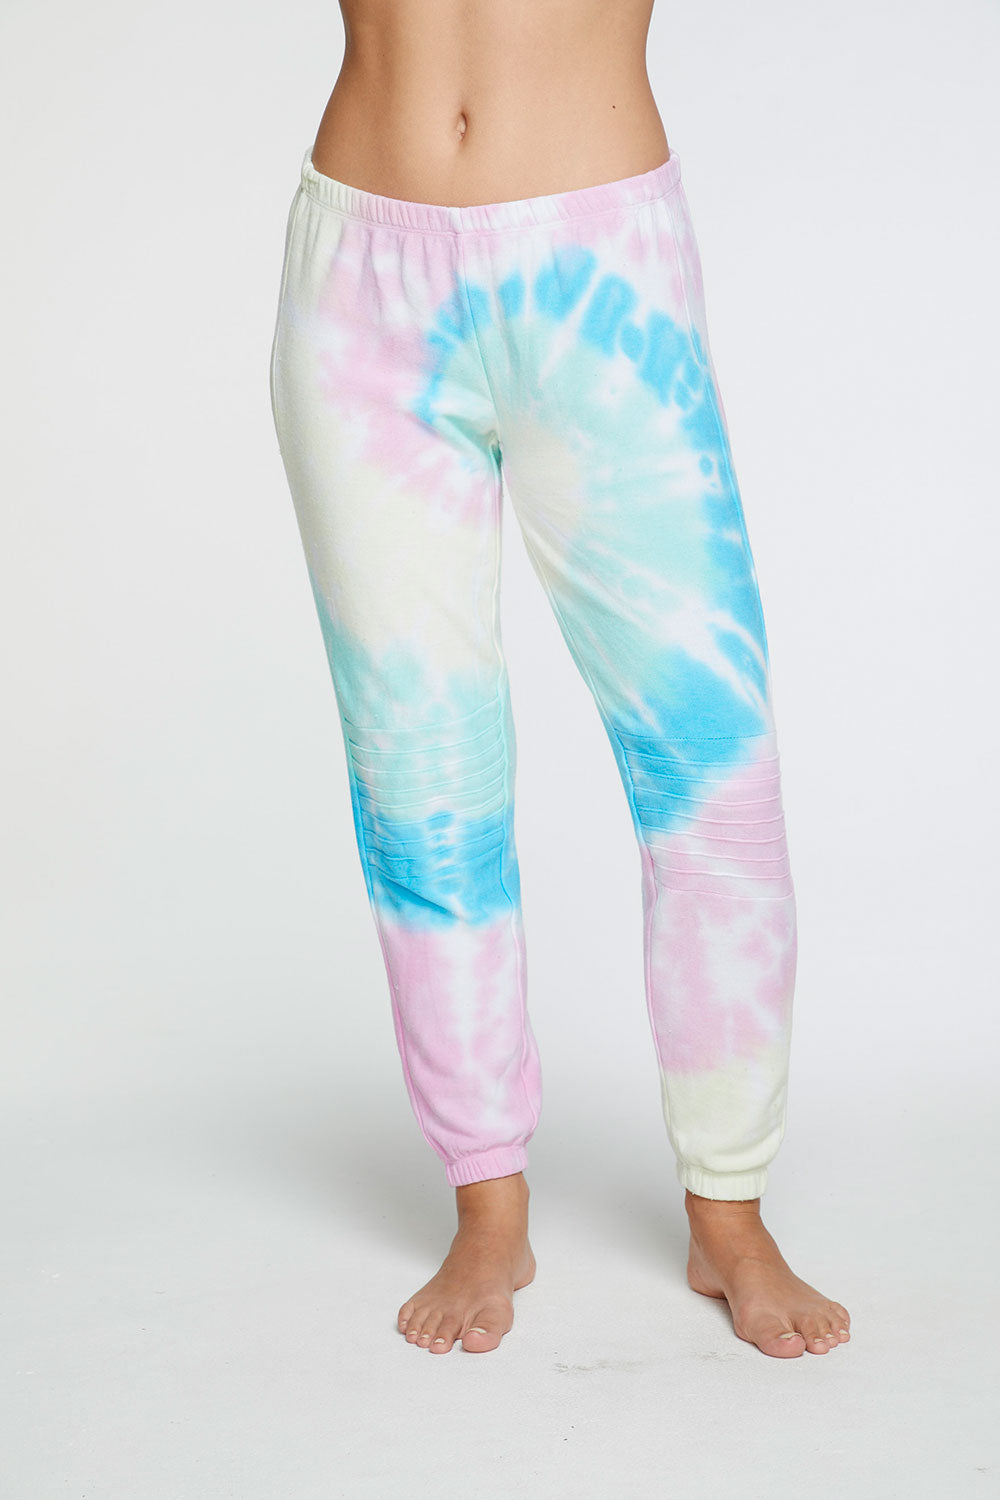 Cozy Knit Slouchy Moto Jogger in Tie Dye WOMENS chaserbrand4.myshopify.com